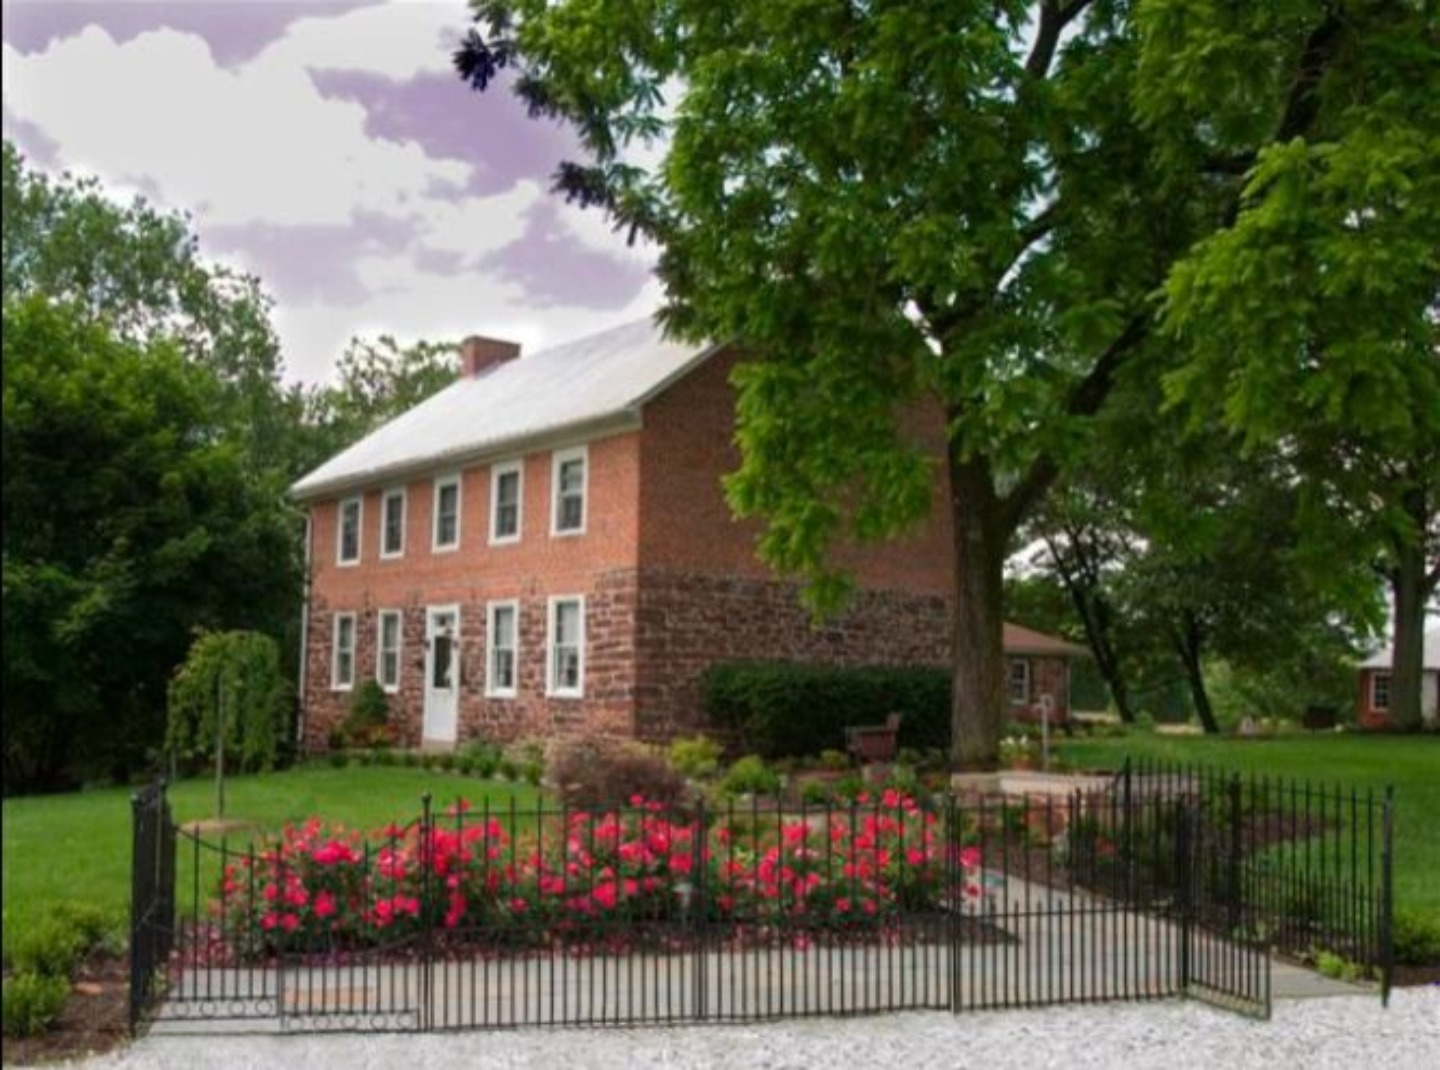 A large brick building with grass in front of a house at Mary-Penn Bed and Breakfast.